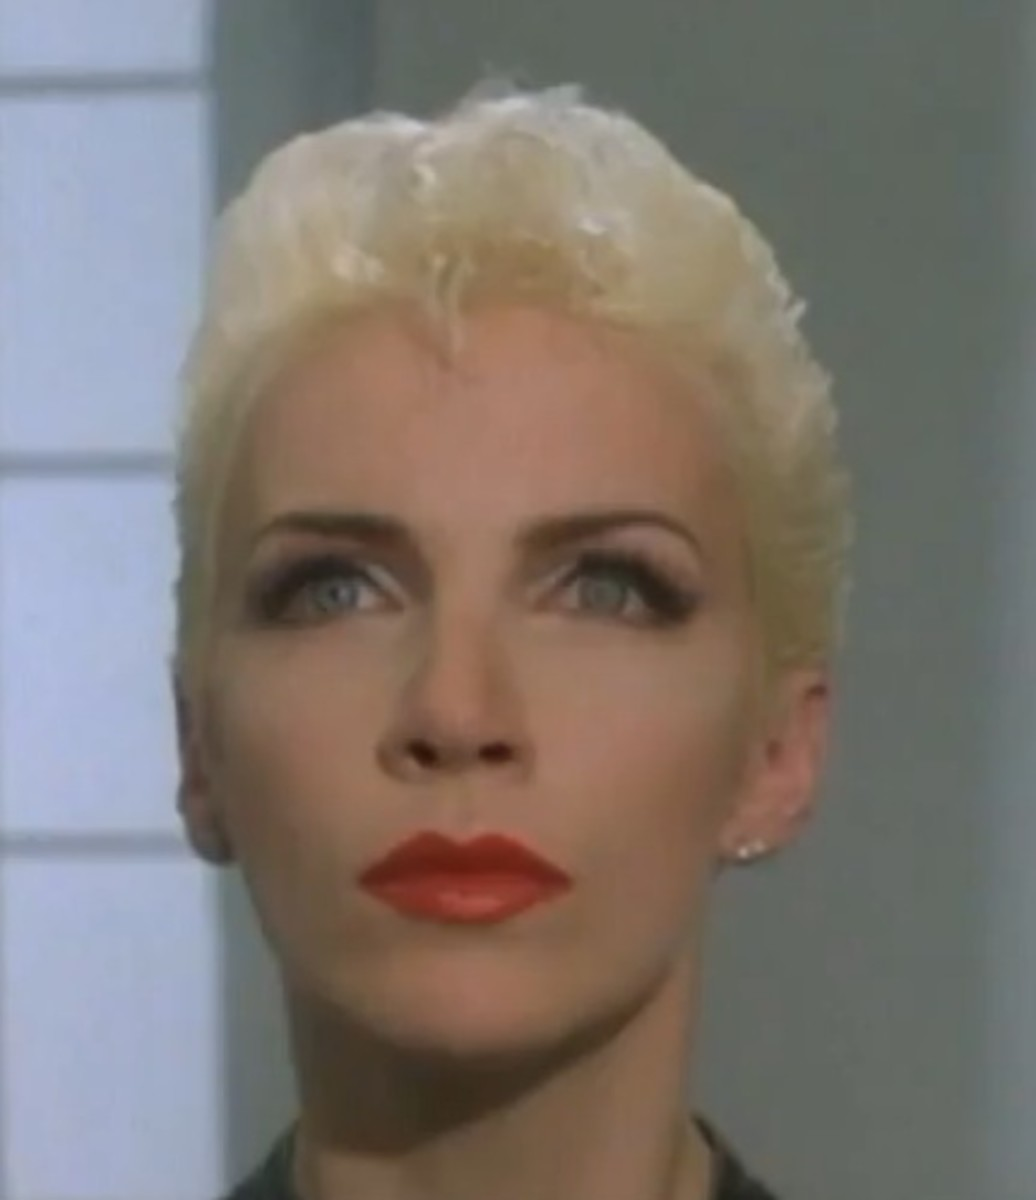 Annie Lennox with Platinum Blonde Hair. Pictures of Celebrities with Platinum Blonde Hair Color.